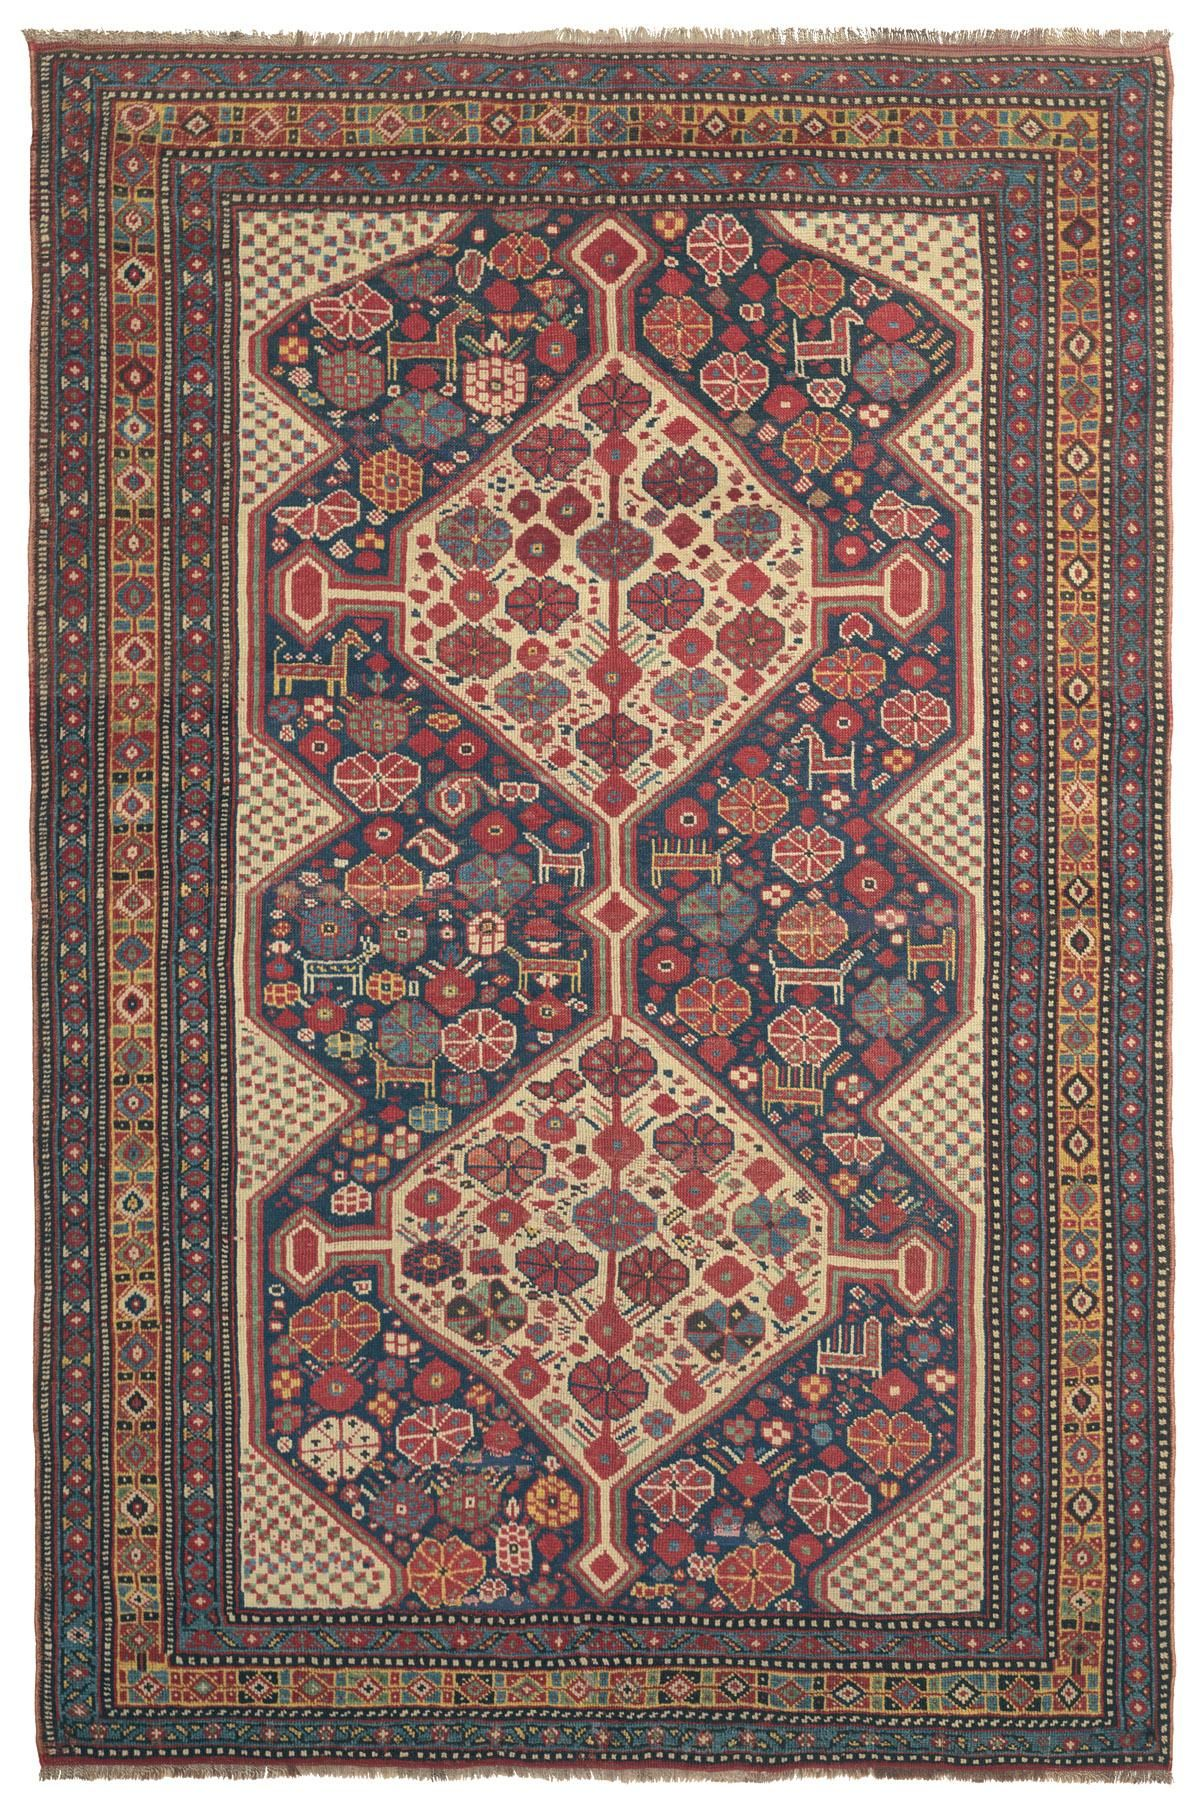 Dyes And Colors Used In Collectible Antique Caucasian Rugs Antique Persian Carpet Rugs Simple Carpets